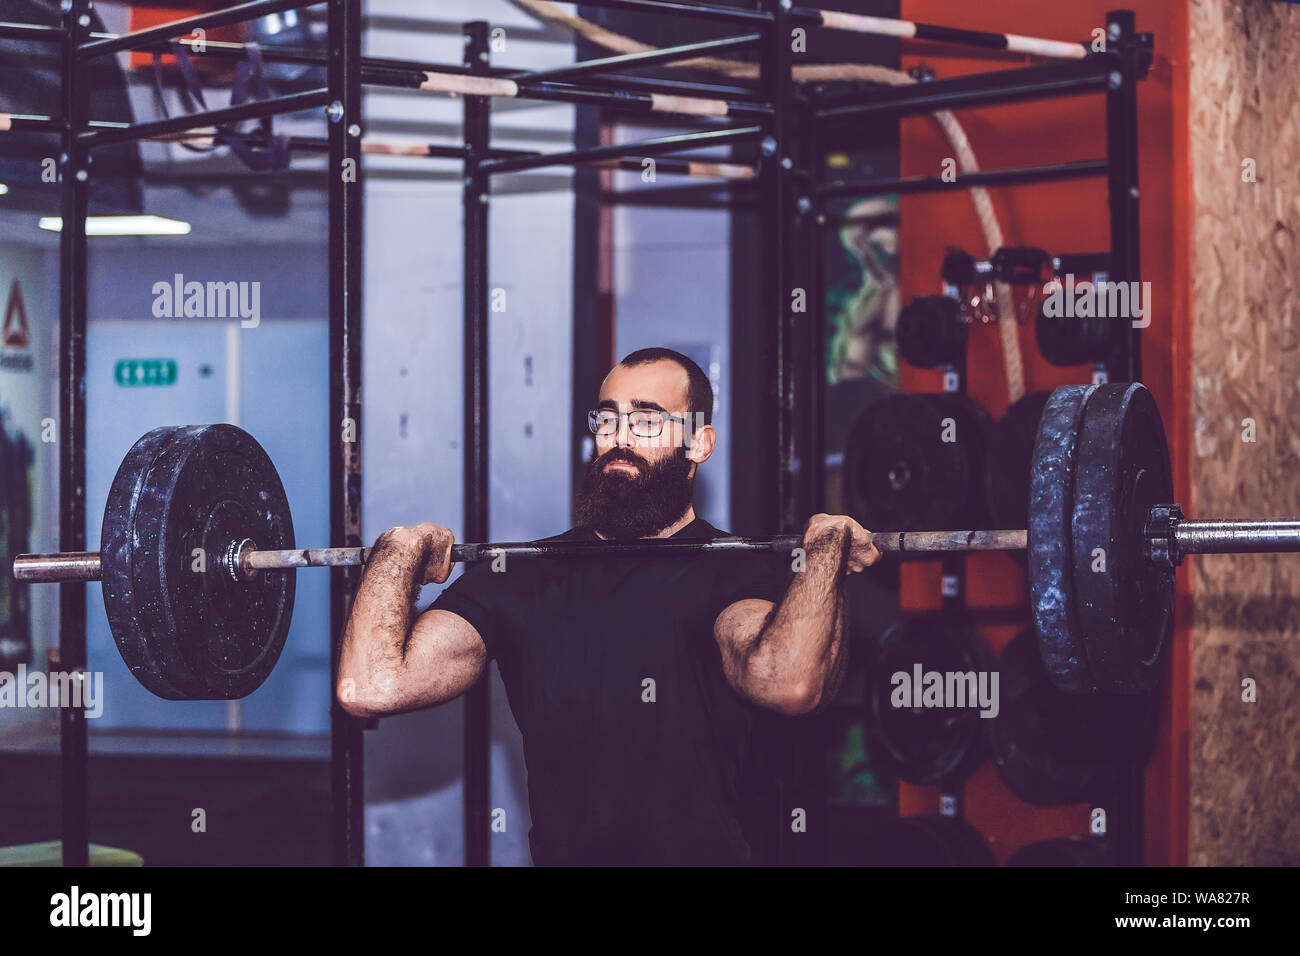 Young bearded man straining to lift heavy weights during a workout session in a gym Stock Photo